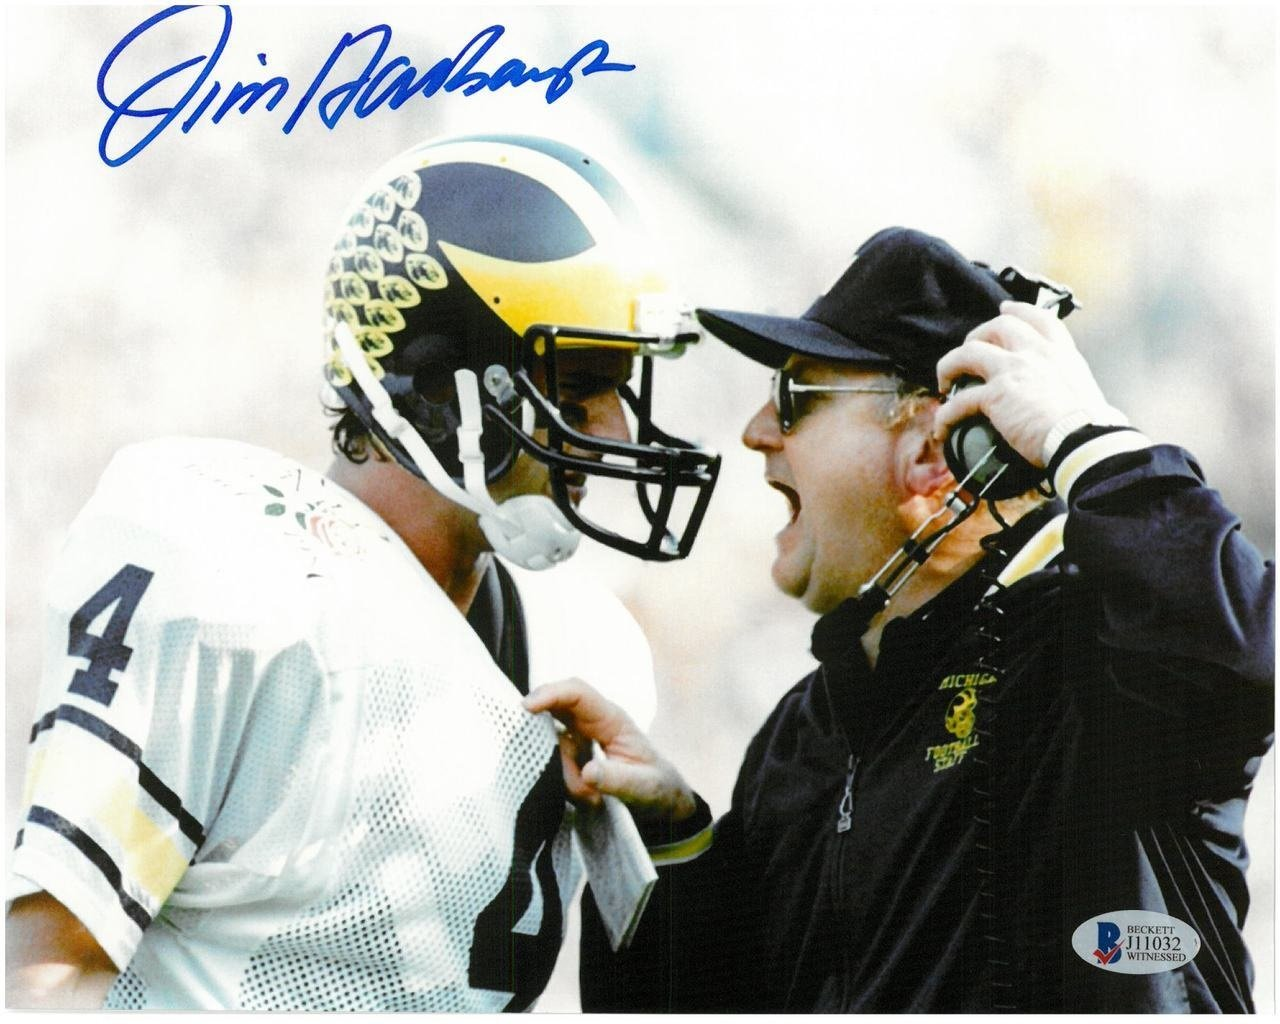 JIM HARBAUGH AUTOGRAPHED UNIVERSITY OF MICHIGAN 8X10 PHOTO #1 - JIM & BO Detroit City Sports